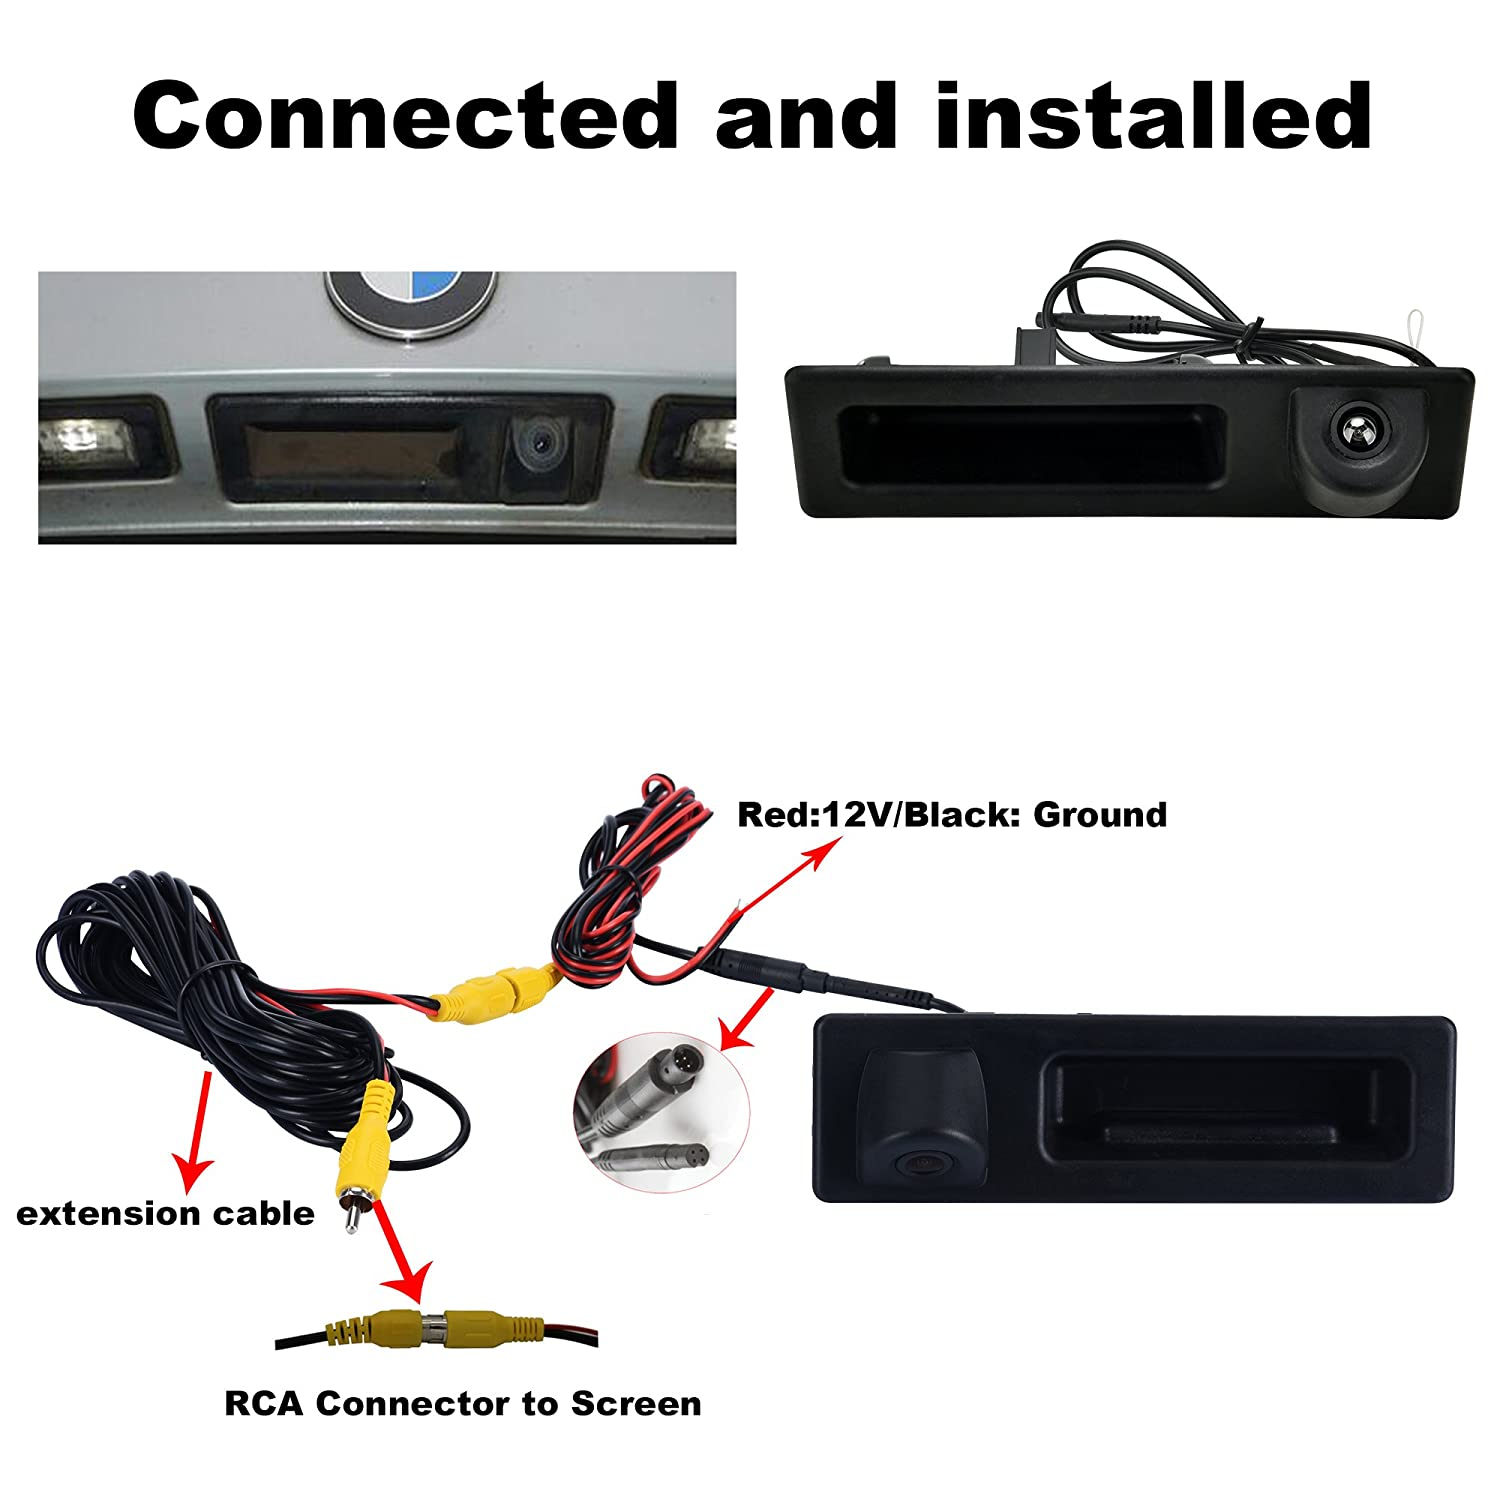 Canying Car Trunk Handle Rear View Camera special for BMW 3 5 X3 Series F10 F11 F25 F30 Shenzhen Zhuohan Technology Co Ltd CA-ZH718L